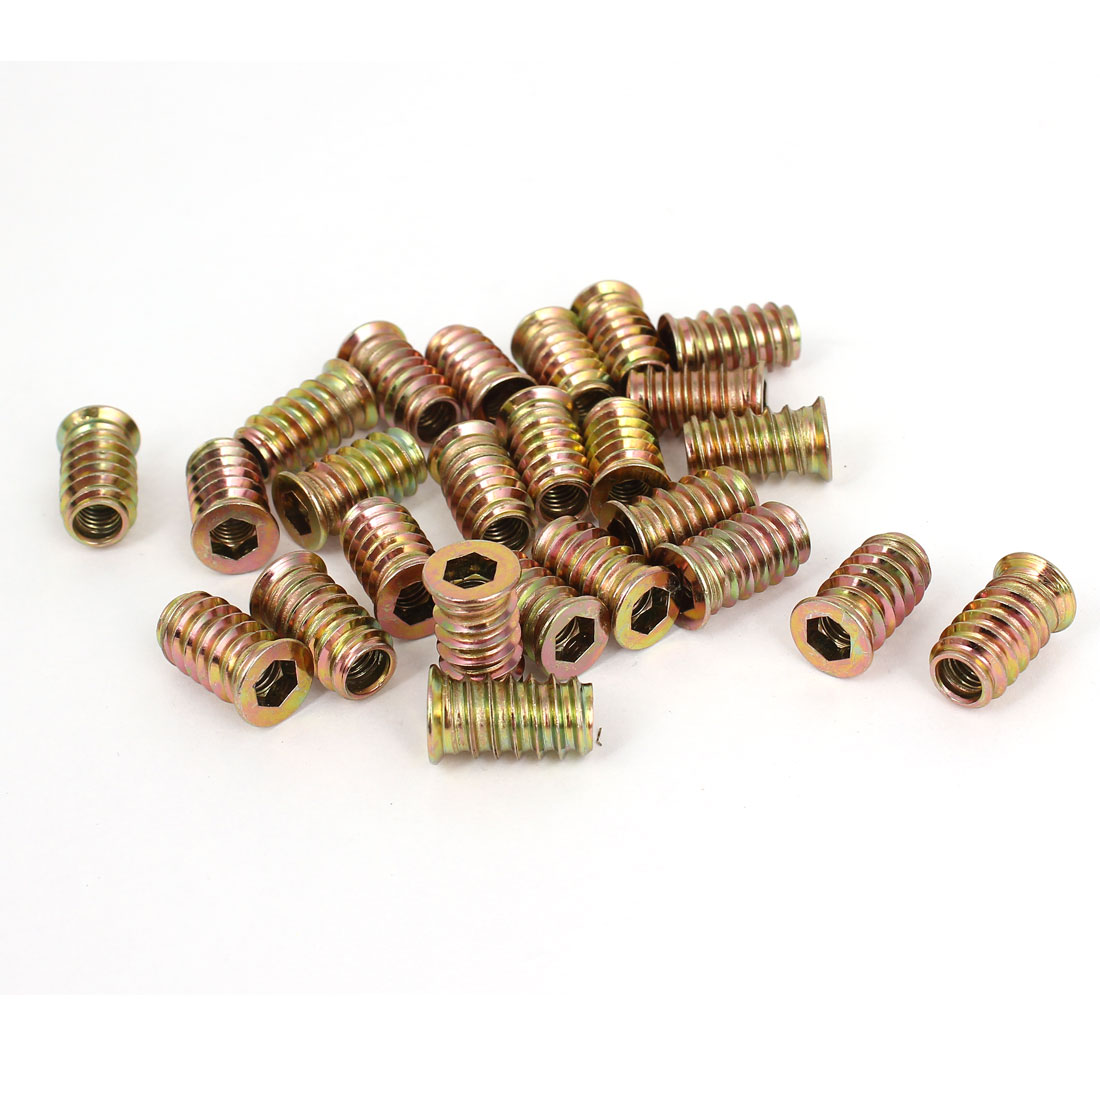 25 Pcs M6 E-Nut Wood Insert Interface Screws Furniture Hexagonal Socket Nuts